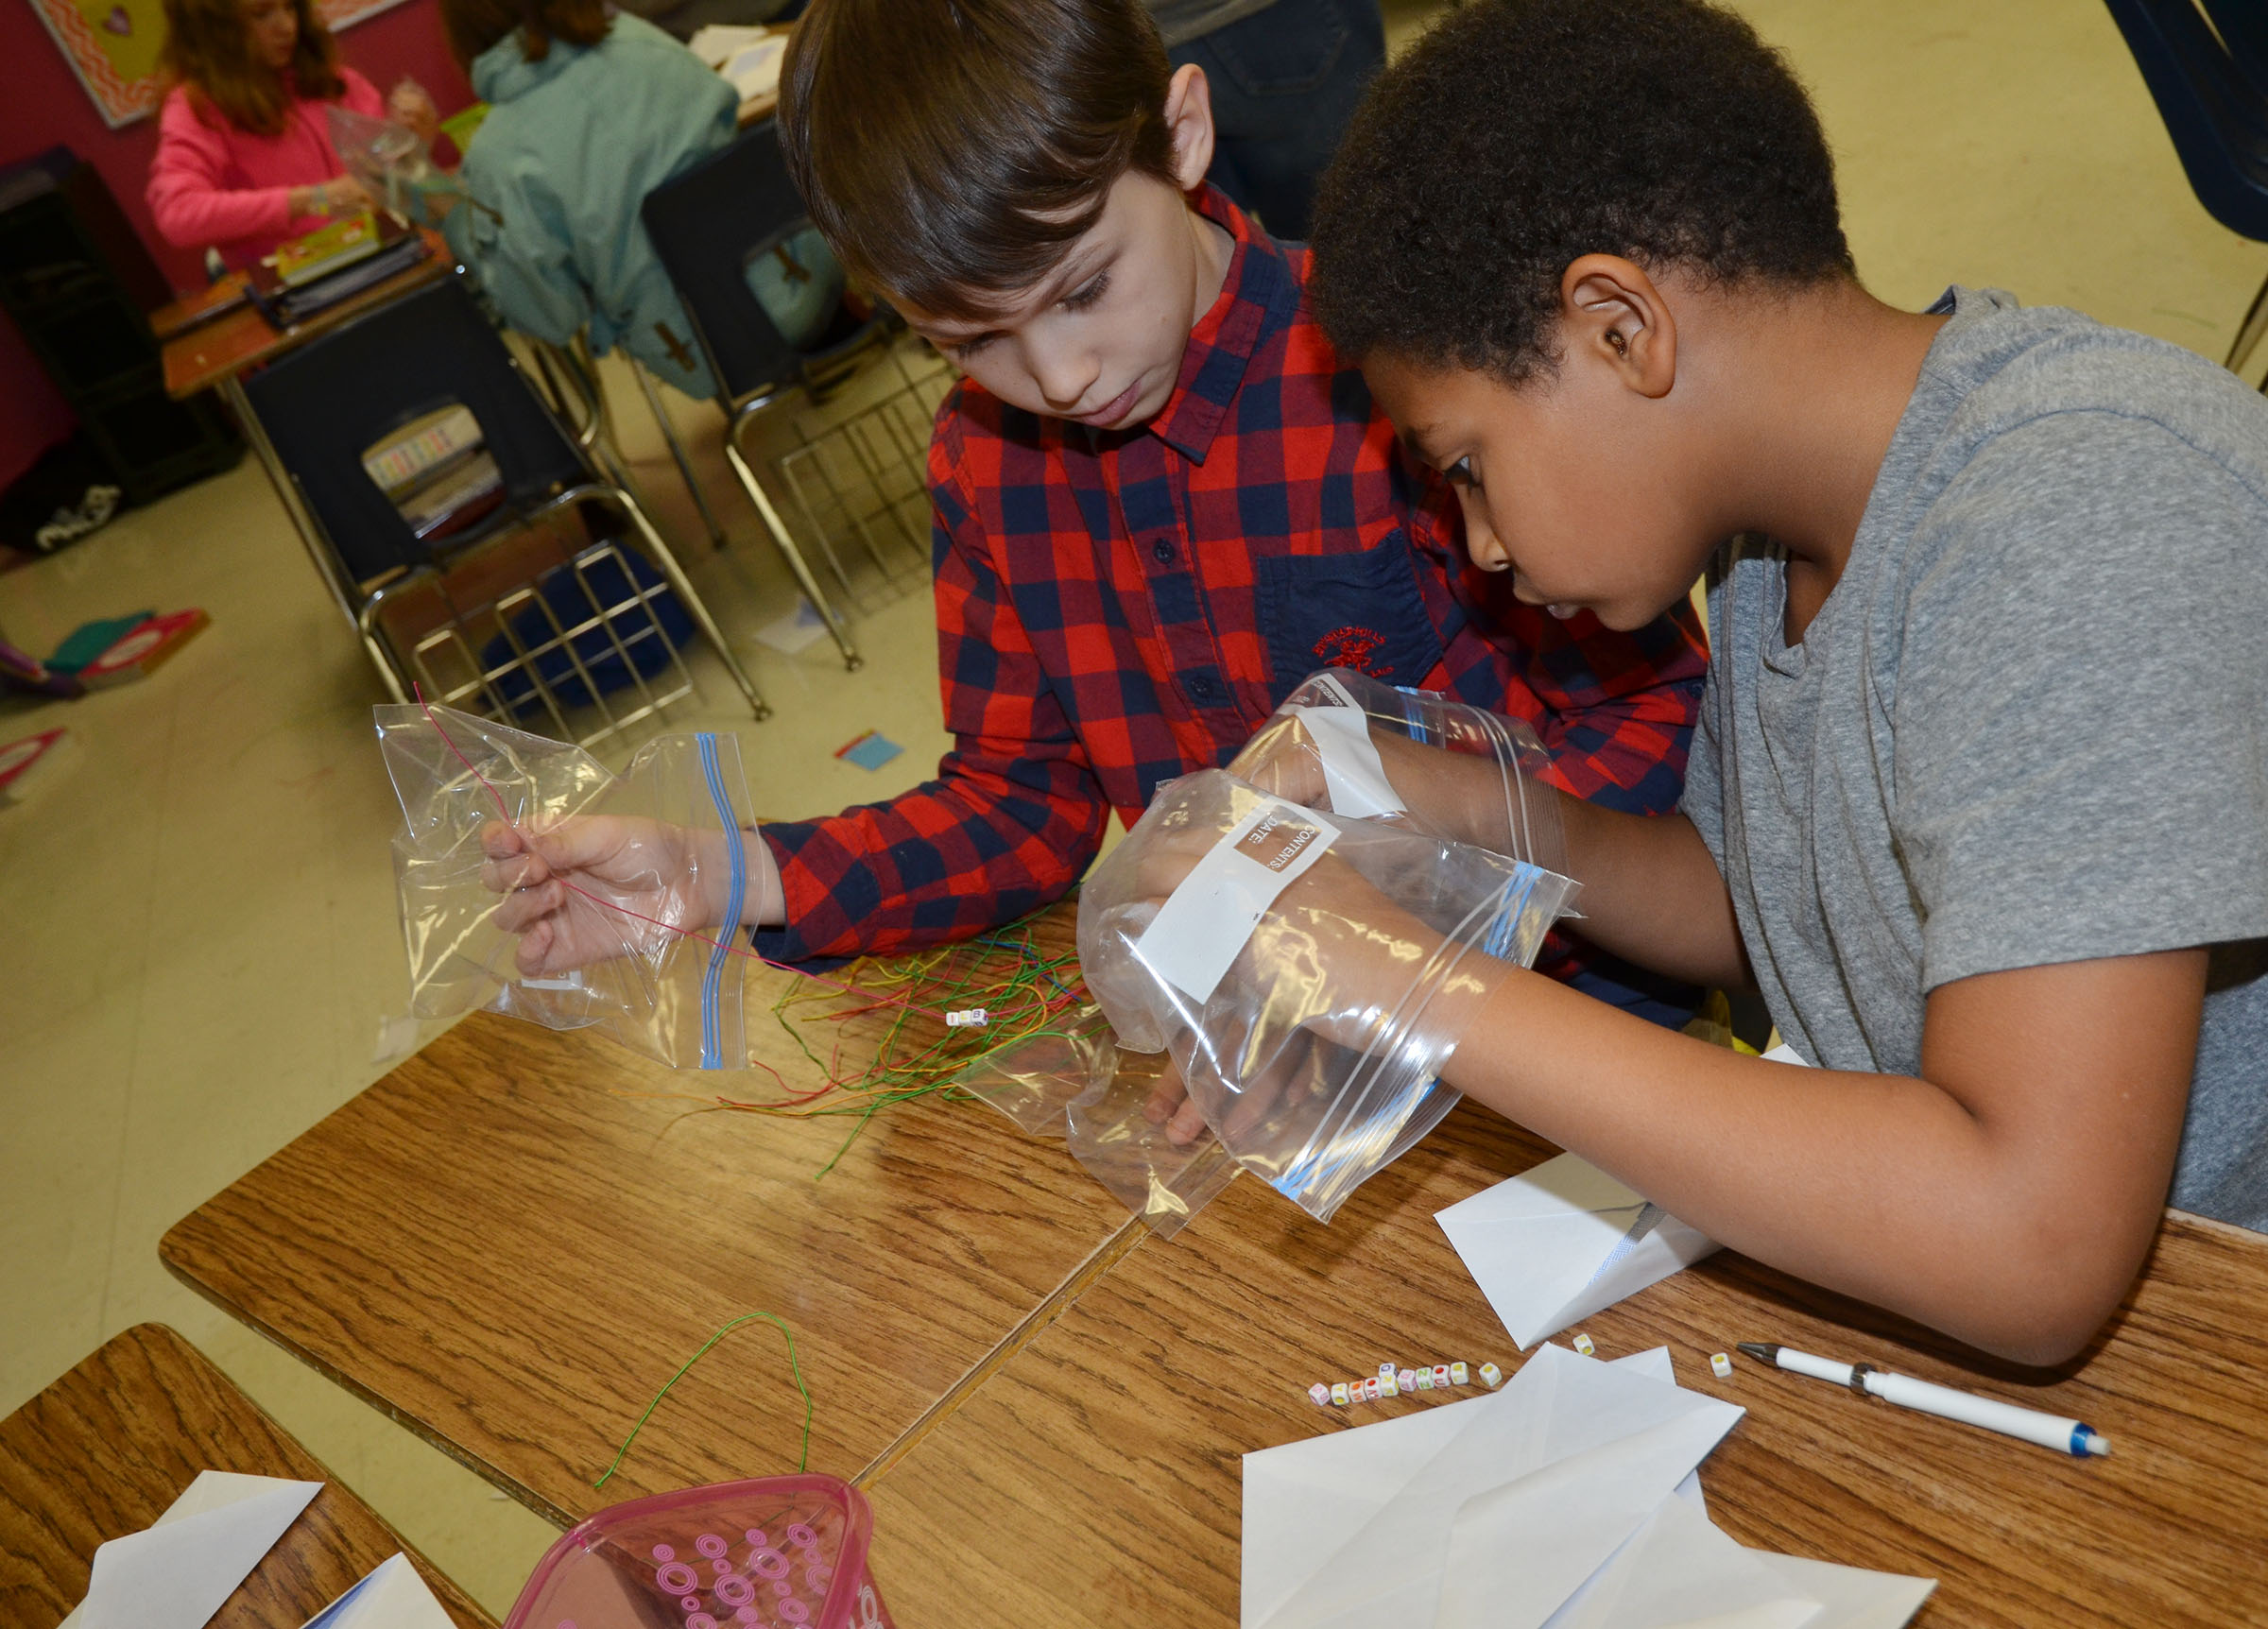 CMS sixth-grader Logan Wilson, at left, and Nasir Johnson make bracelets while wearing zip lock bags for gloves.